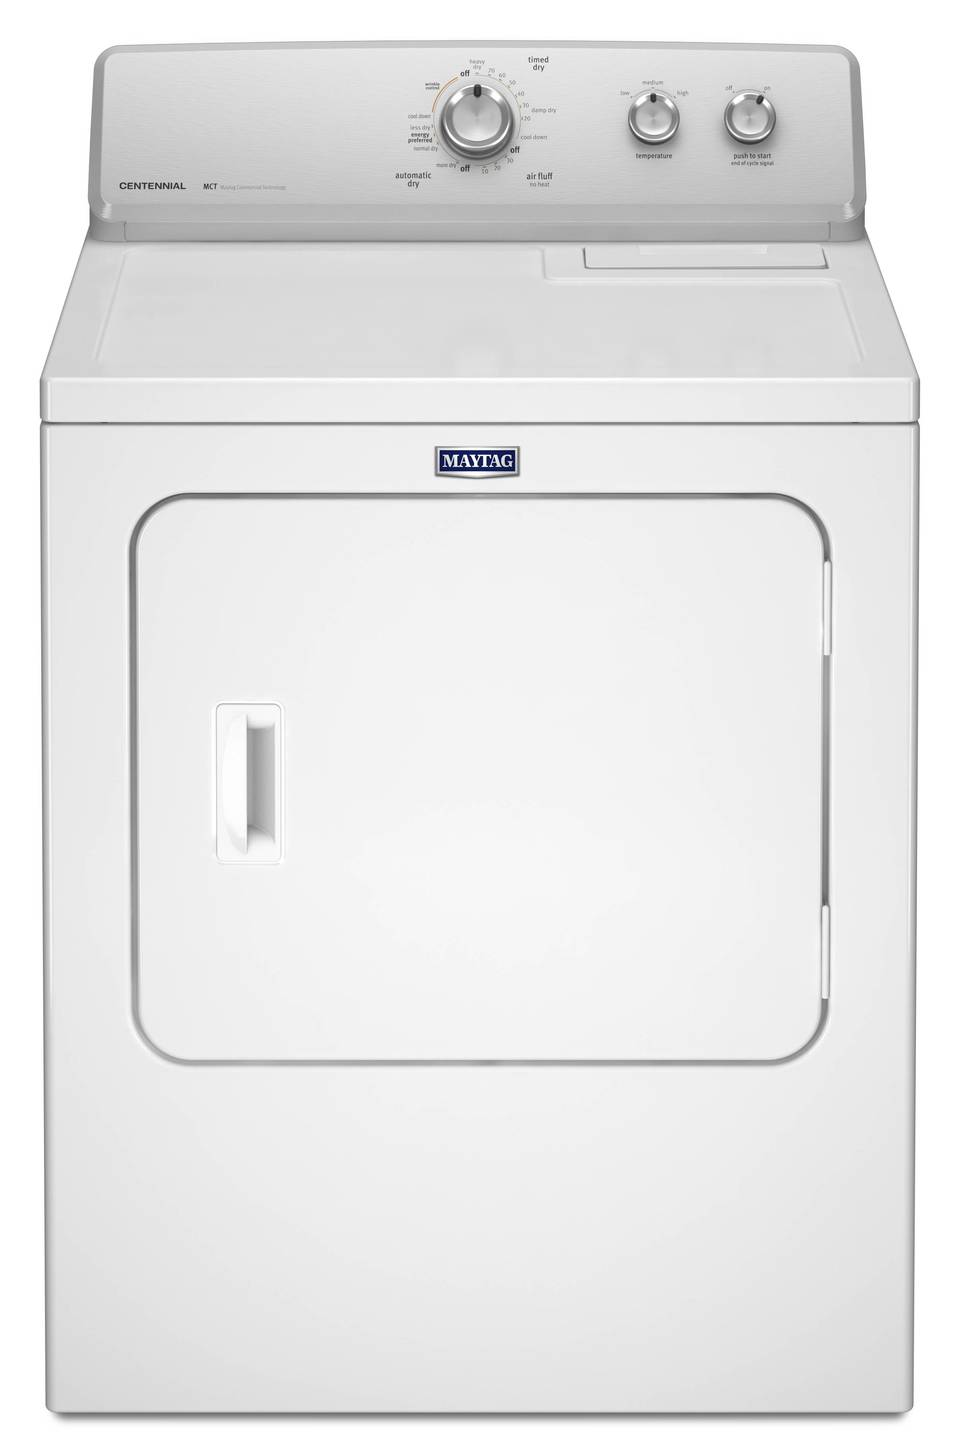 Maytag 7 cu ft Electric Dryer  White. Shop Dryers at Lowes com